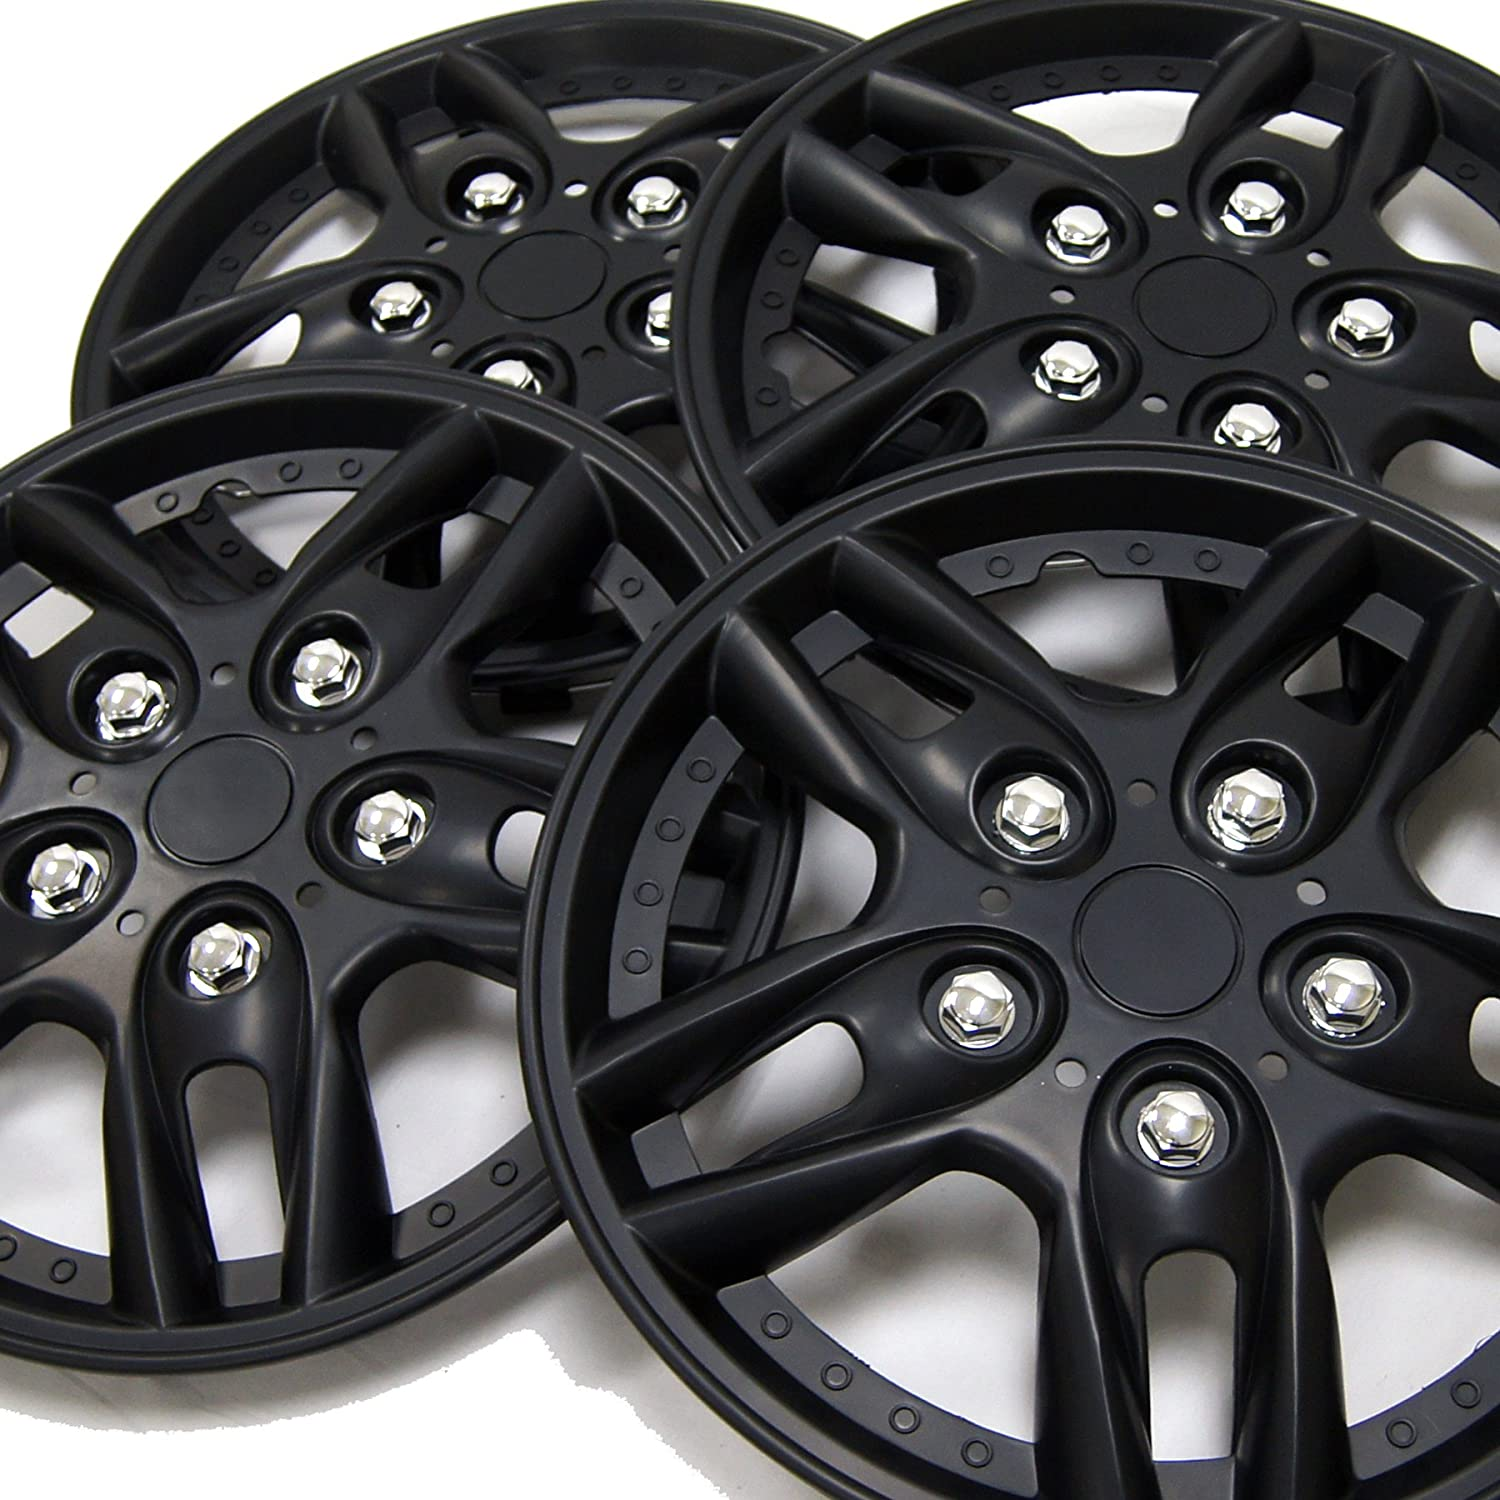 TuningPros WC-15-515-B 15-Inches Pop On Type Improved Hubcaps Wheel Skin Cover Matte Black Set of 4